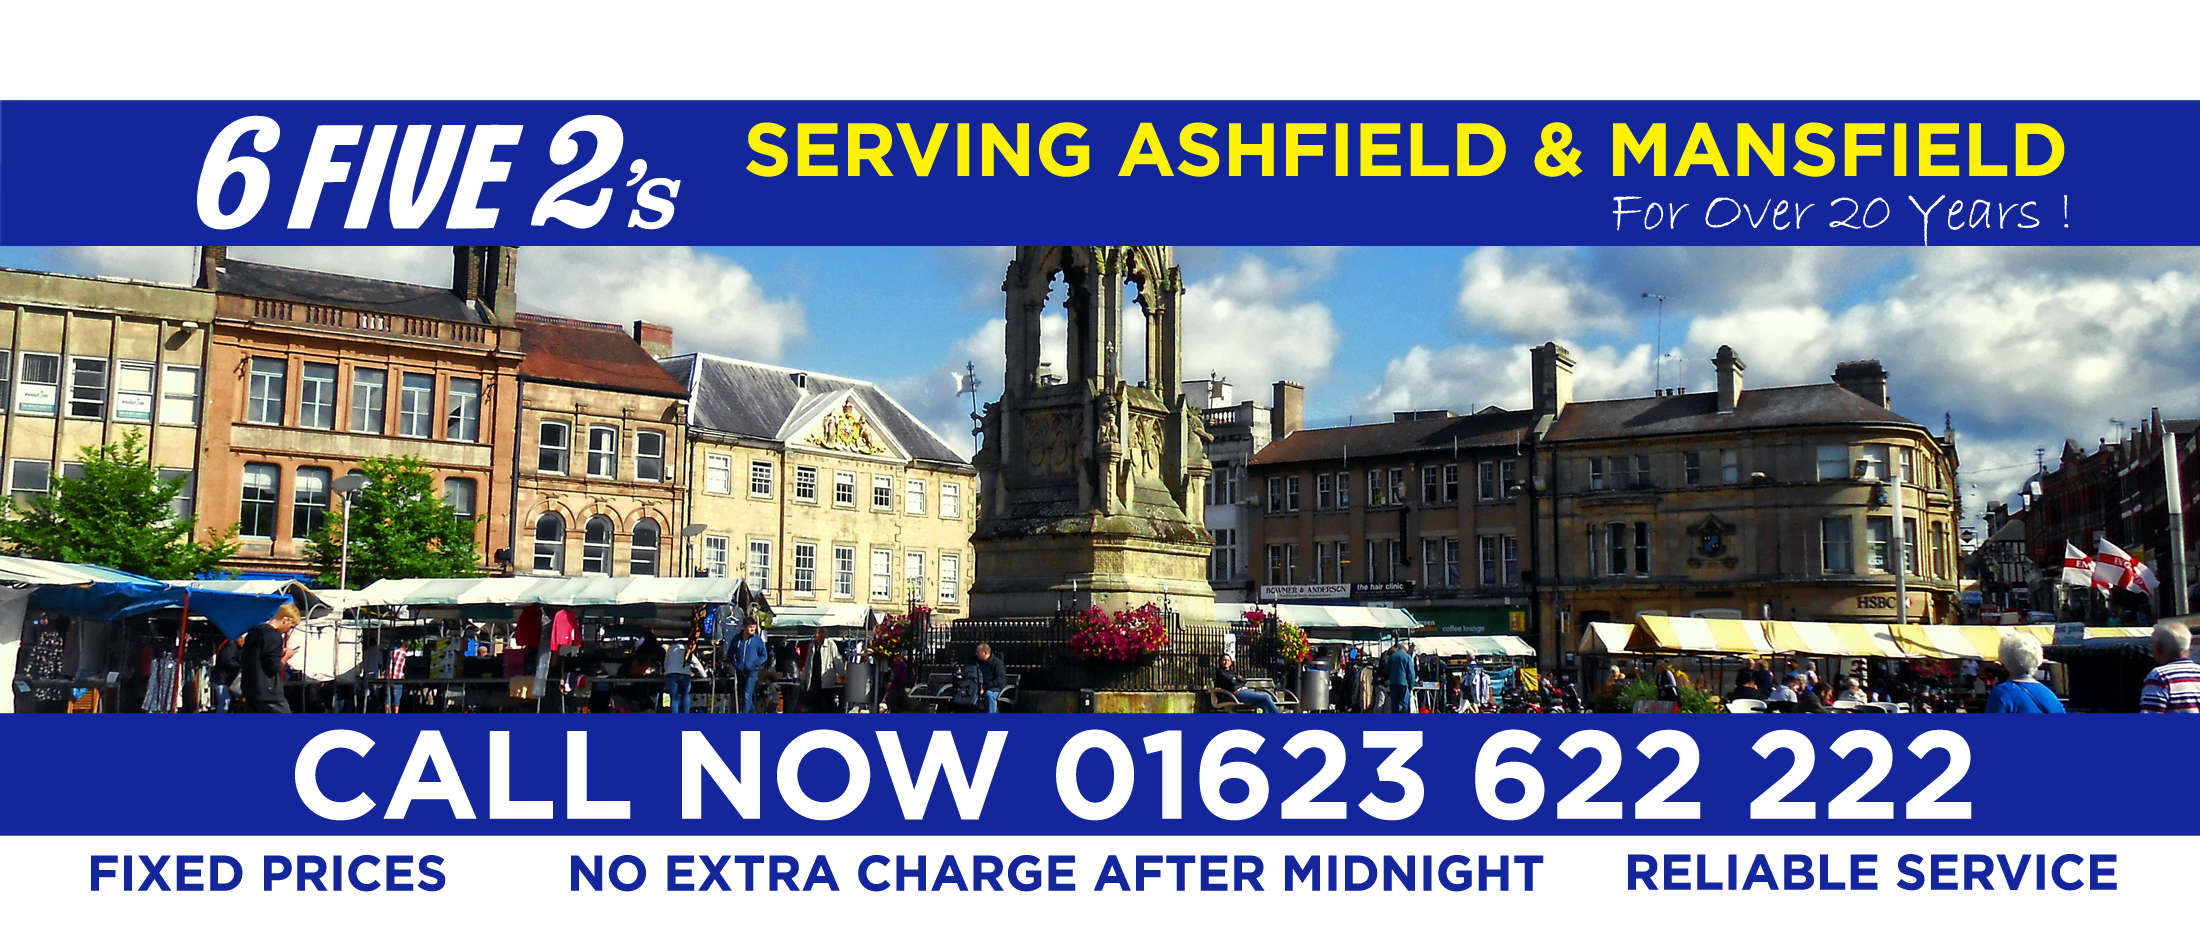 652's Private Hire Taxi Company in Mansfield and Throughout